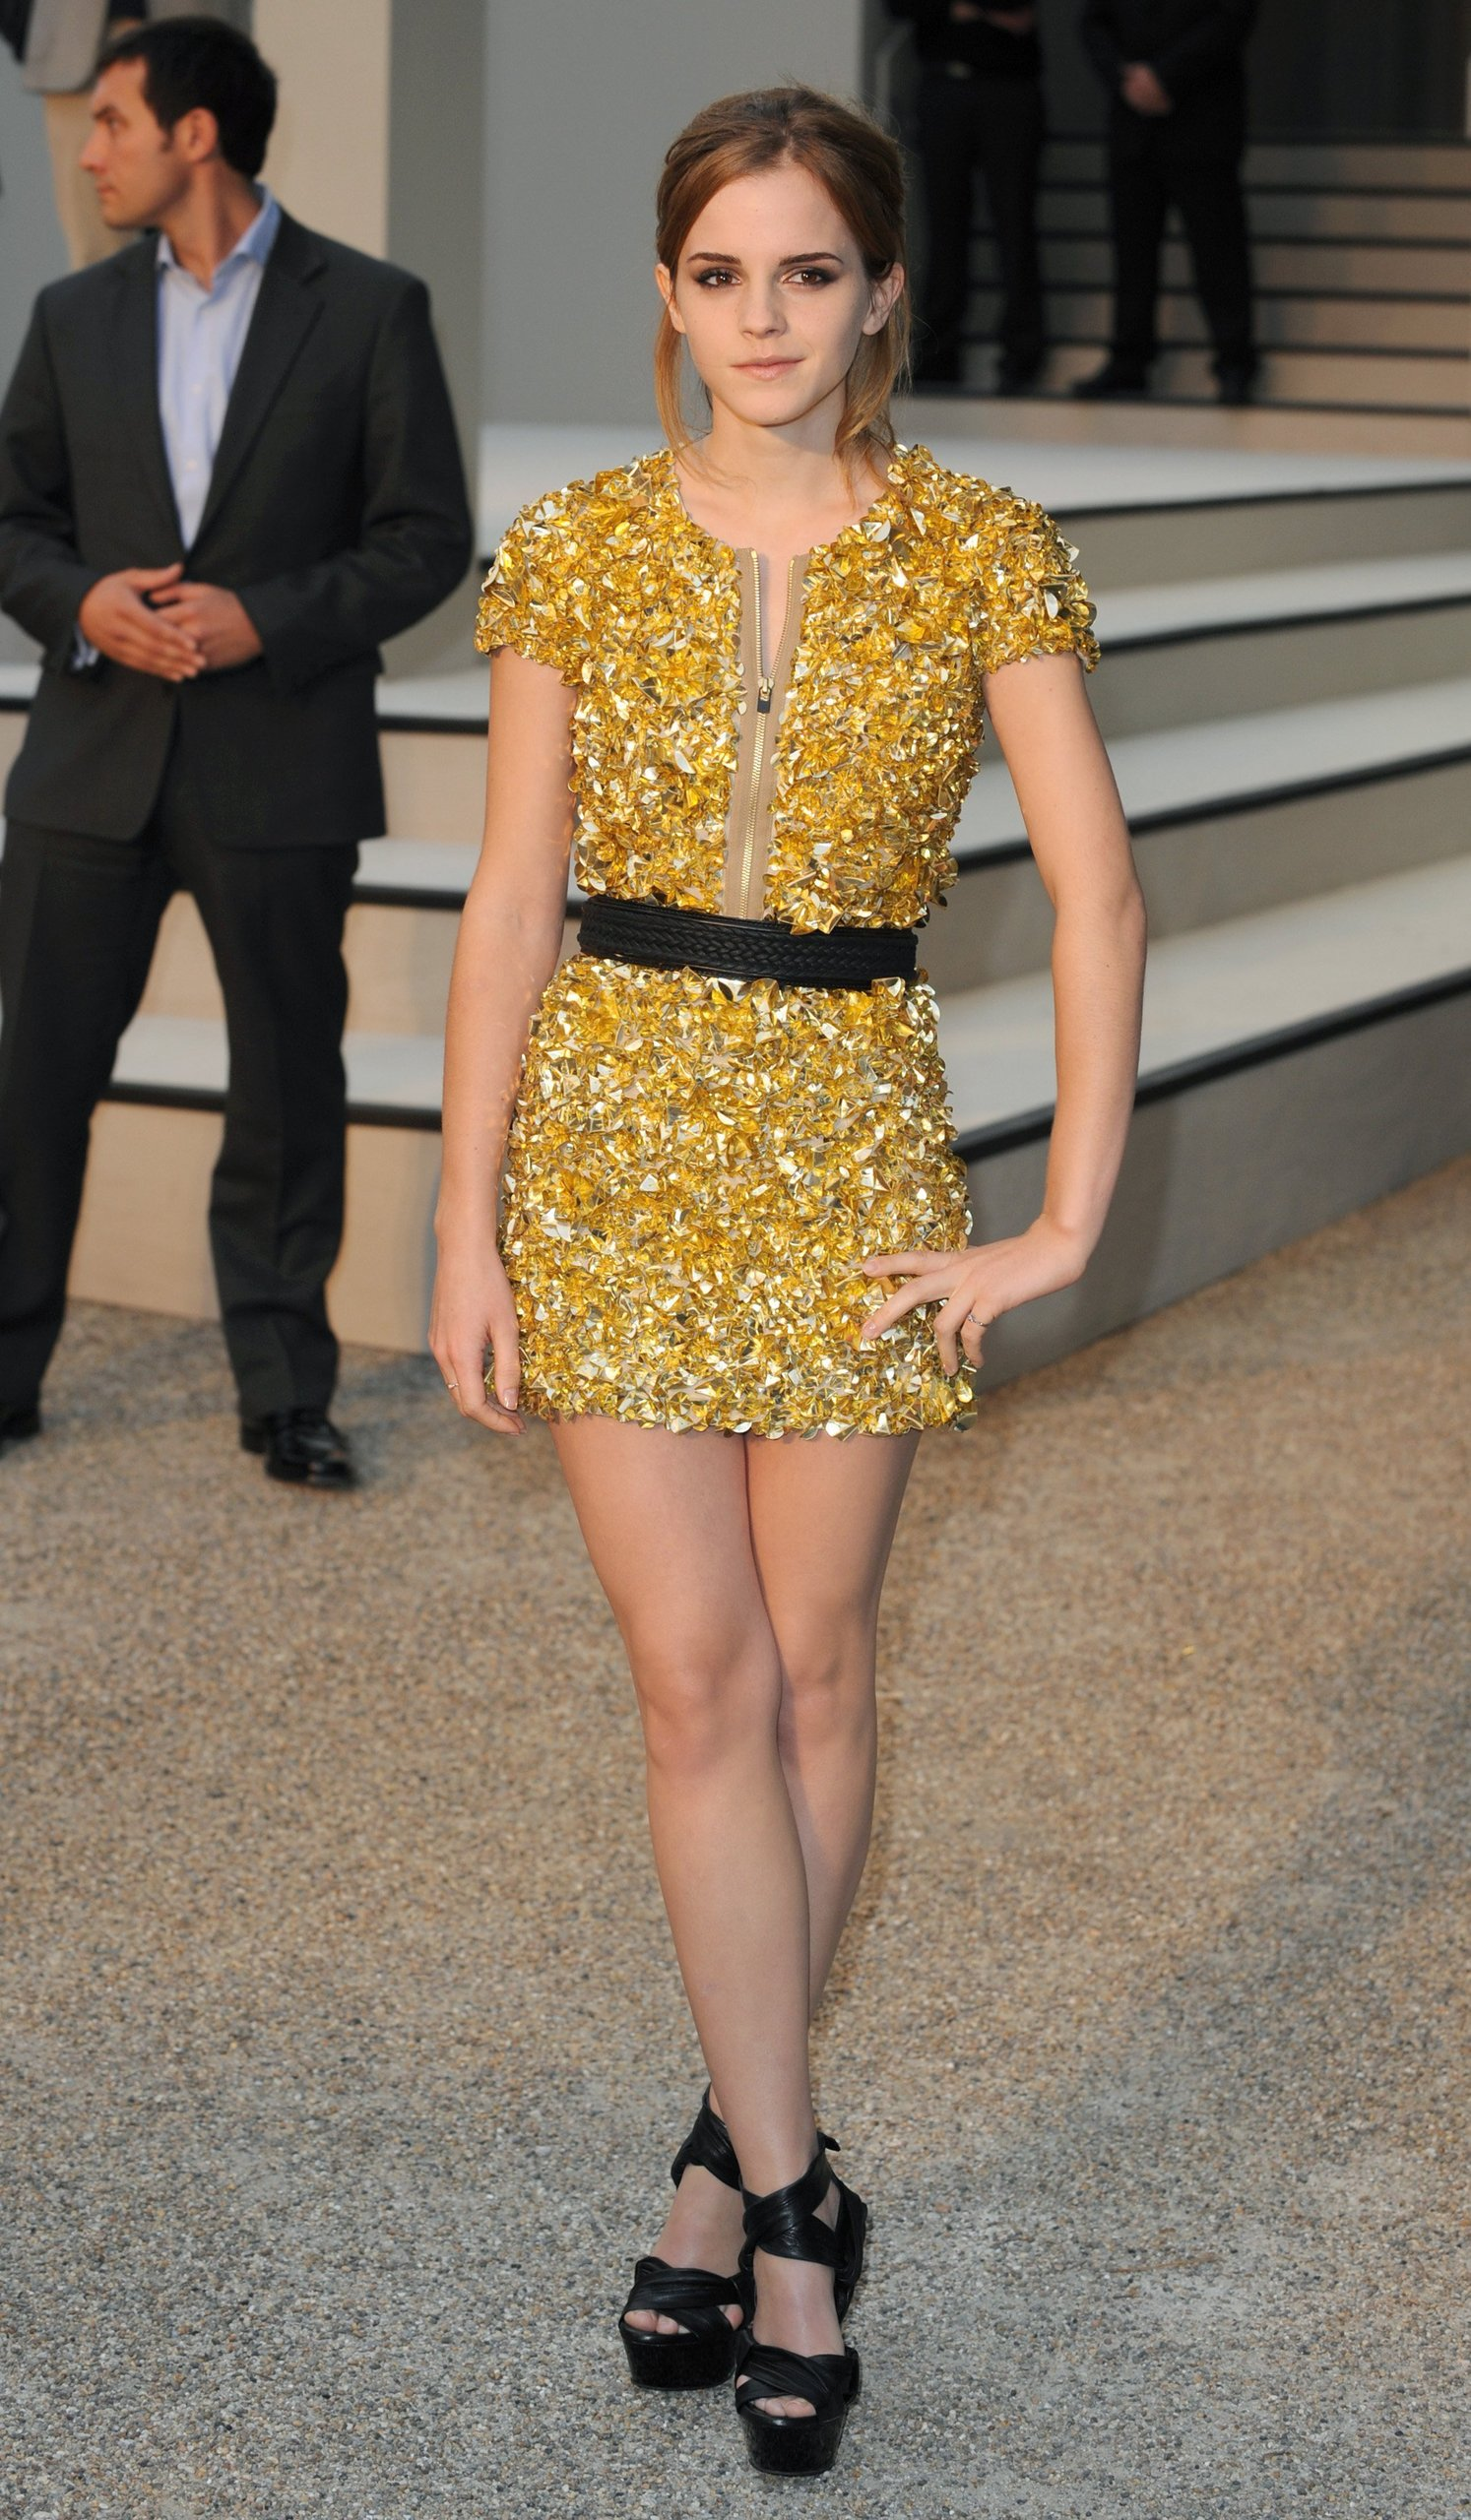 Emma Watson Red Carpet Dresses And Best Looks Ever